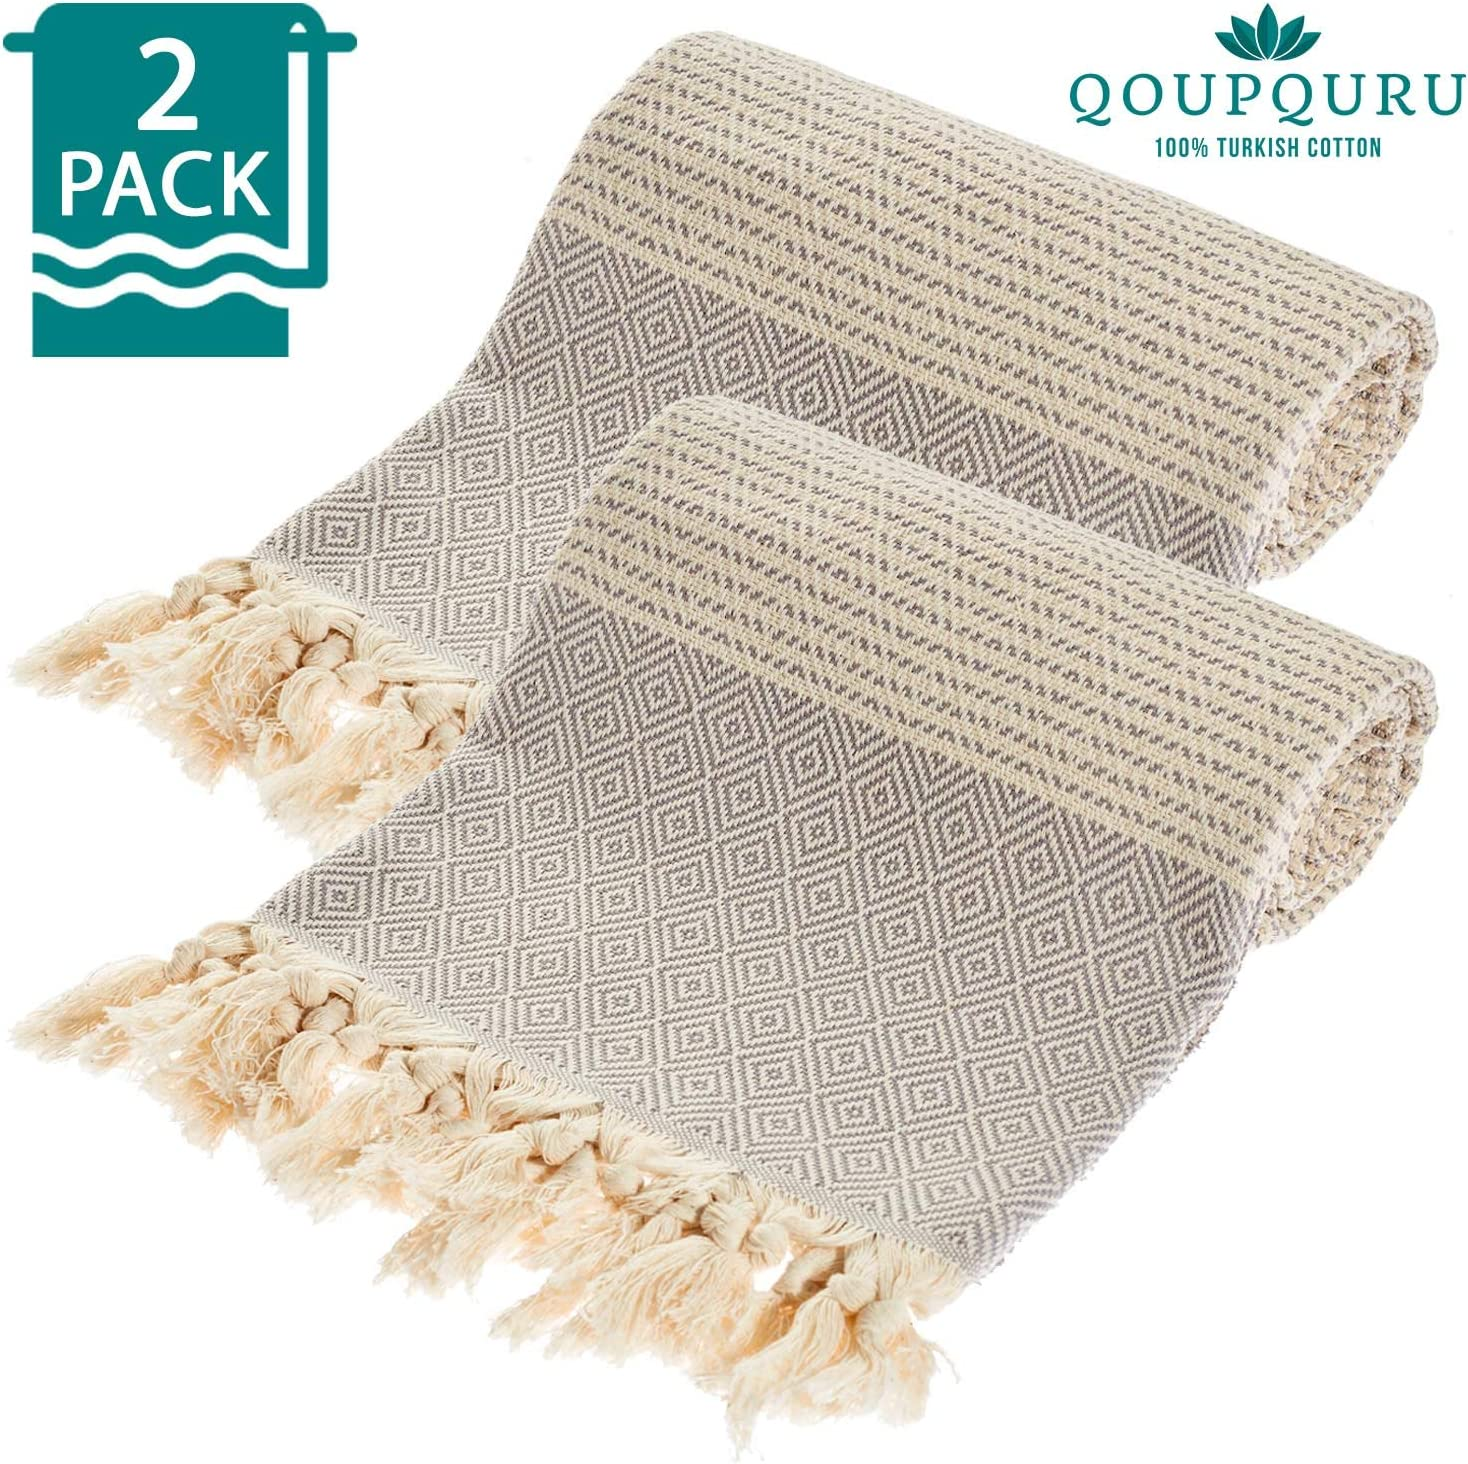 QoupQuru Turkish Beach Towels – 2 Pack Peshtemal Towel Set – 100% Turkish Cotton – Light Weight, Absorbent & Easy Dry